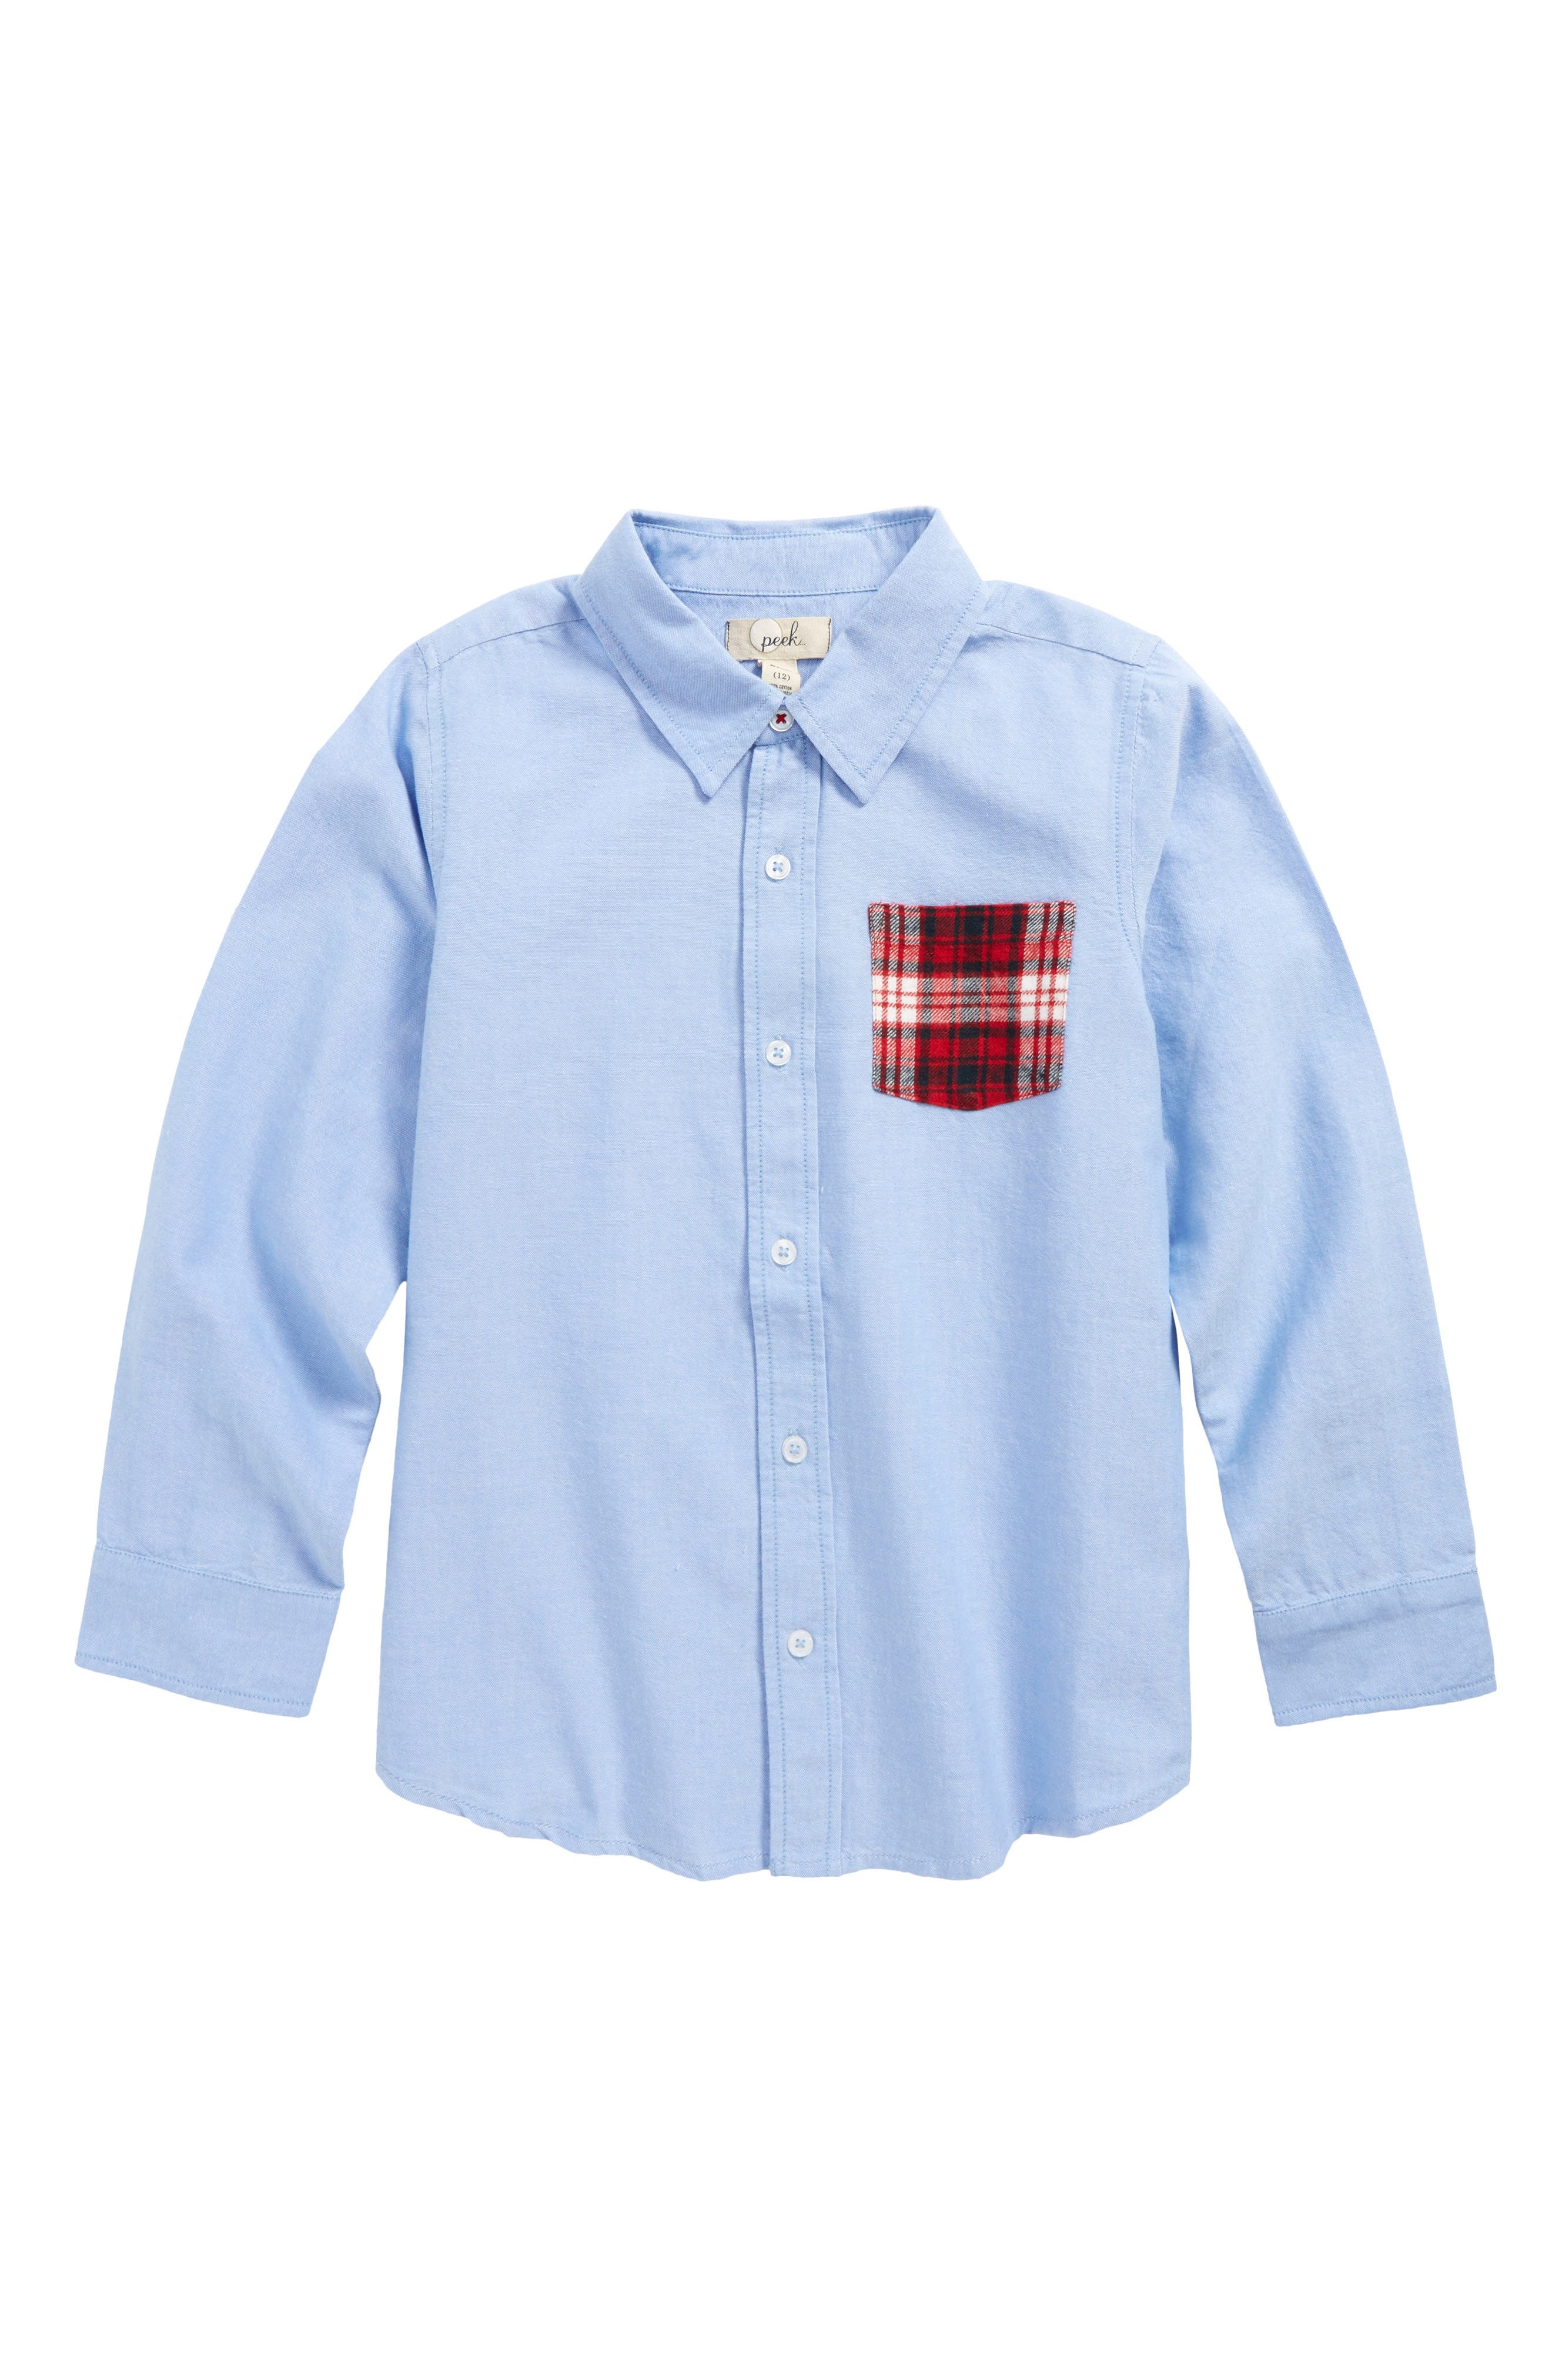 Johnny Oxford Shirt,                             Main thumbnail 1, color,                             Blue